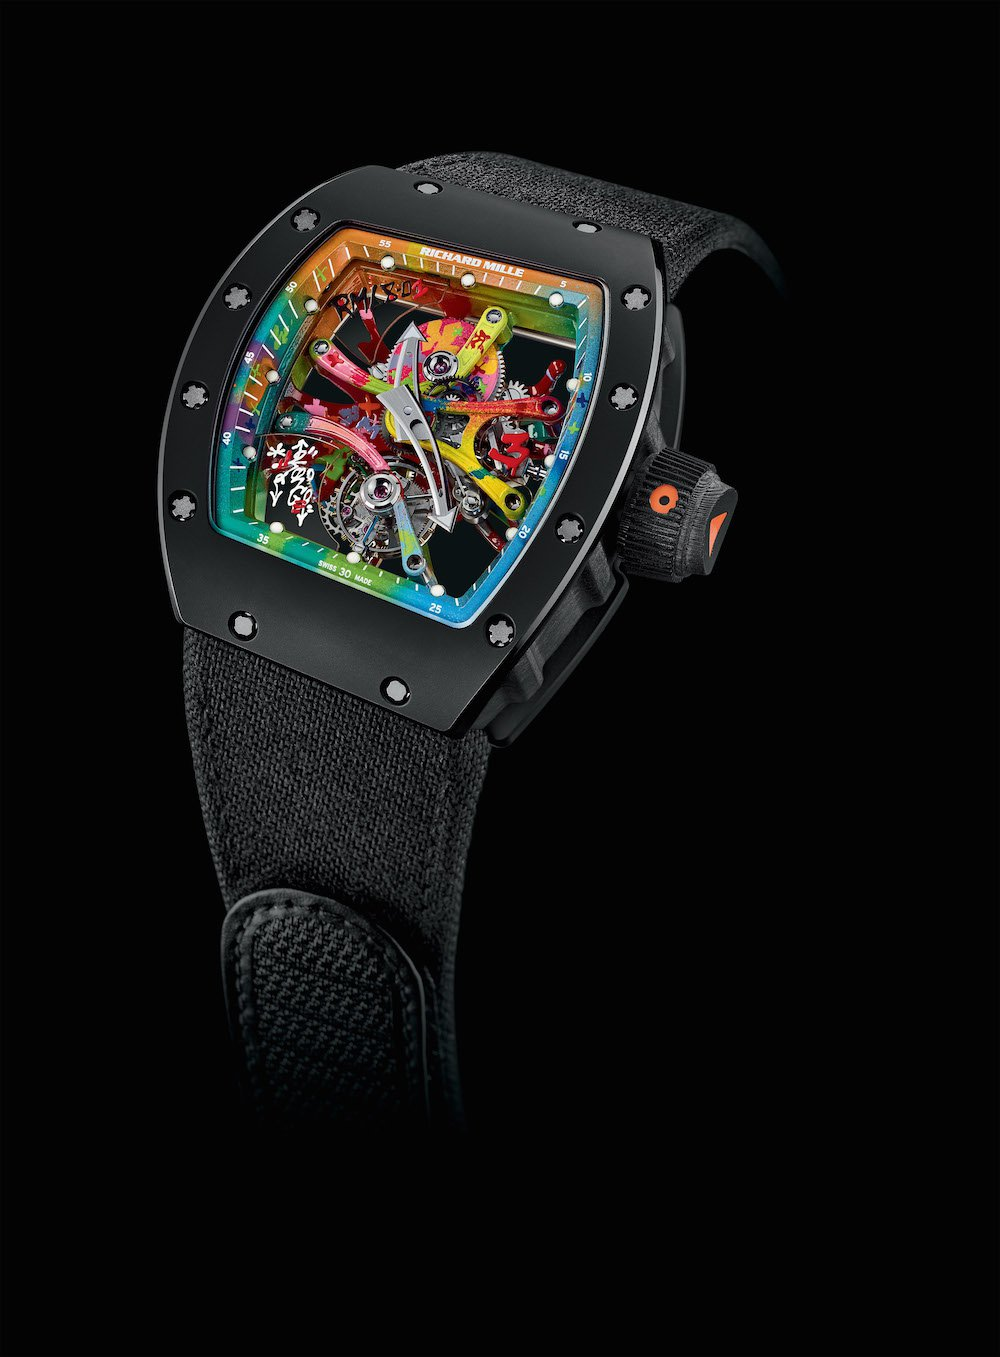 Richard-Mille-RM-68-01-Tourbillon-Cyrill-Kongo-1.jpg